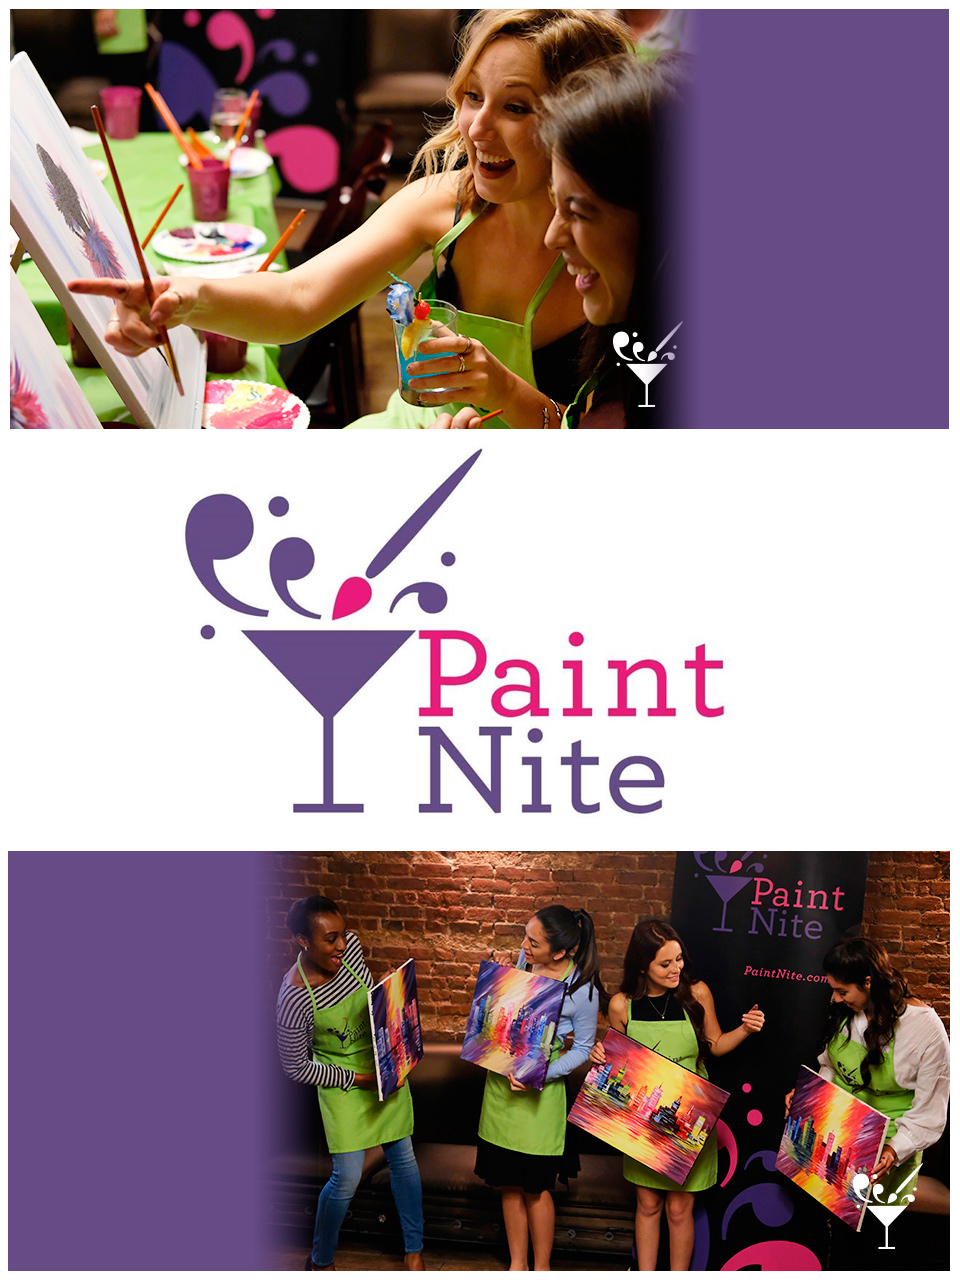 Paint nite discount coupons